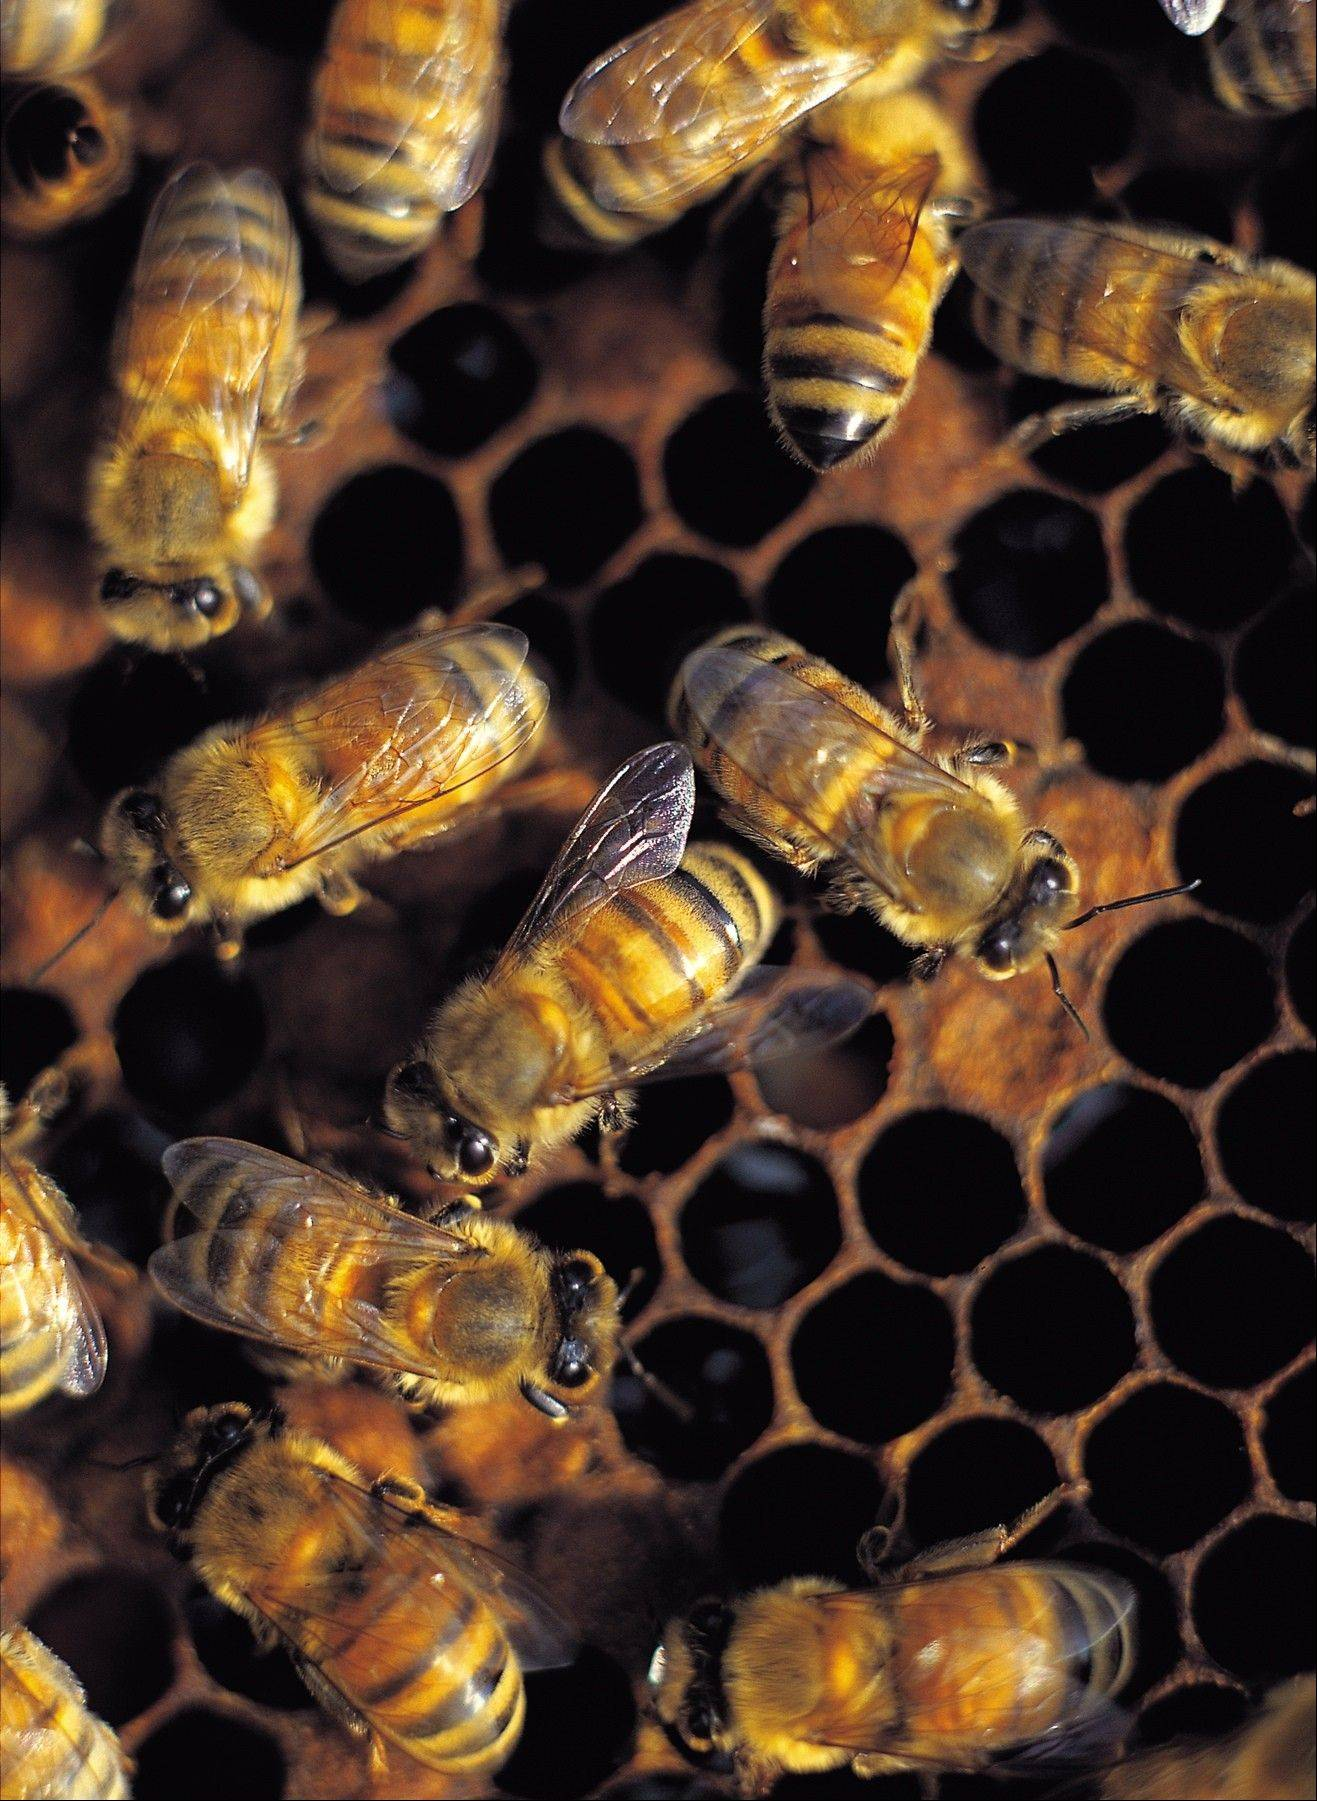 West Dundee officials approved an amendment to its animal control ordinance that now permits residents to raise honeybees in their backyards.